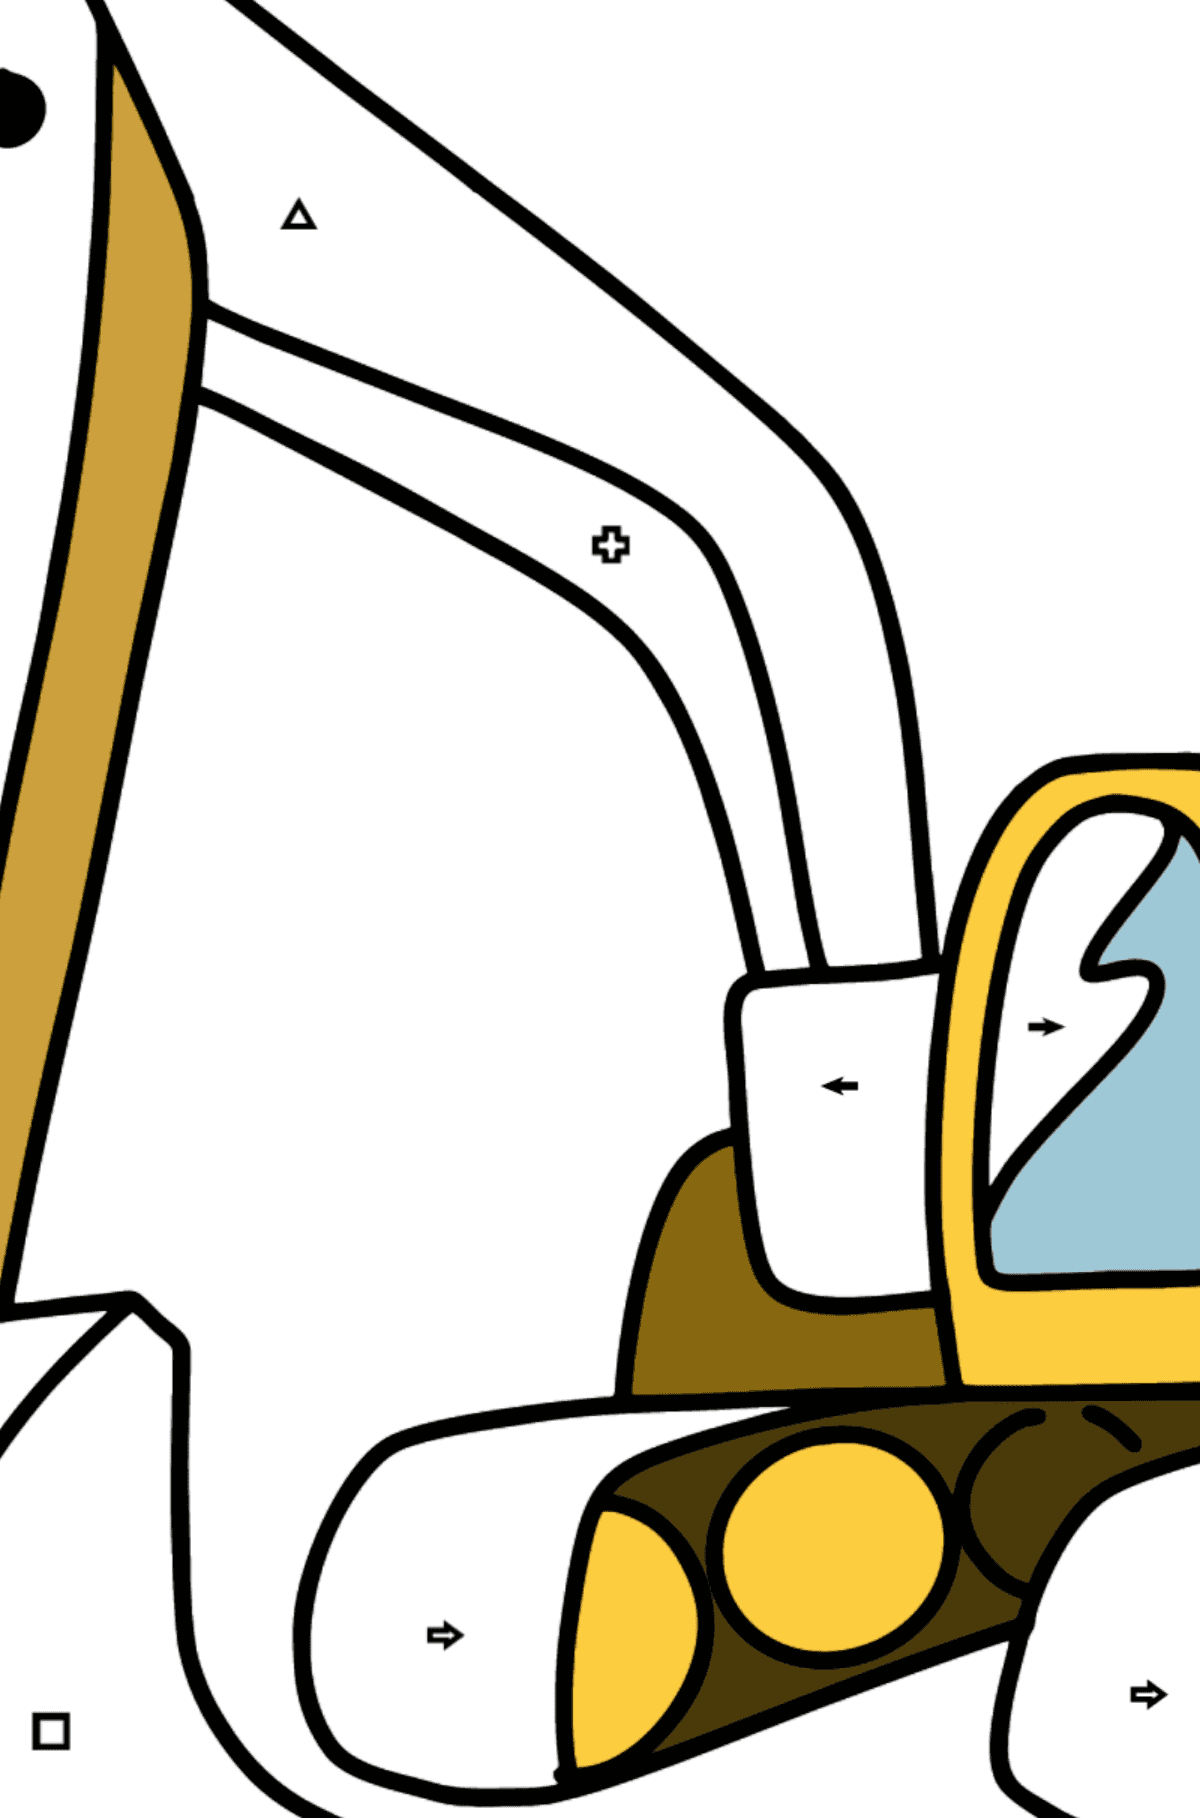 Tractor Excavator coloring page - Coloring by Symbols and Geometric Shapes for Kids